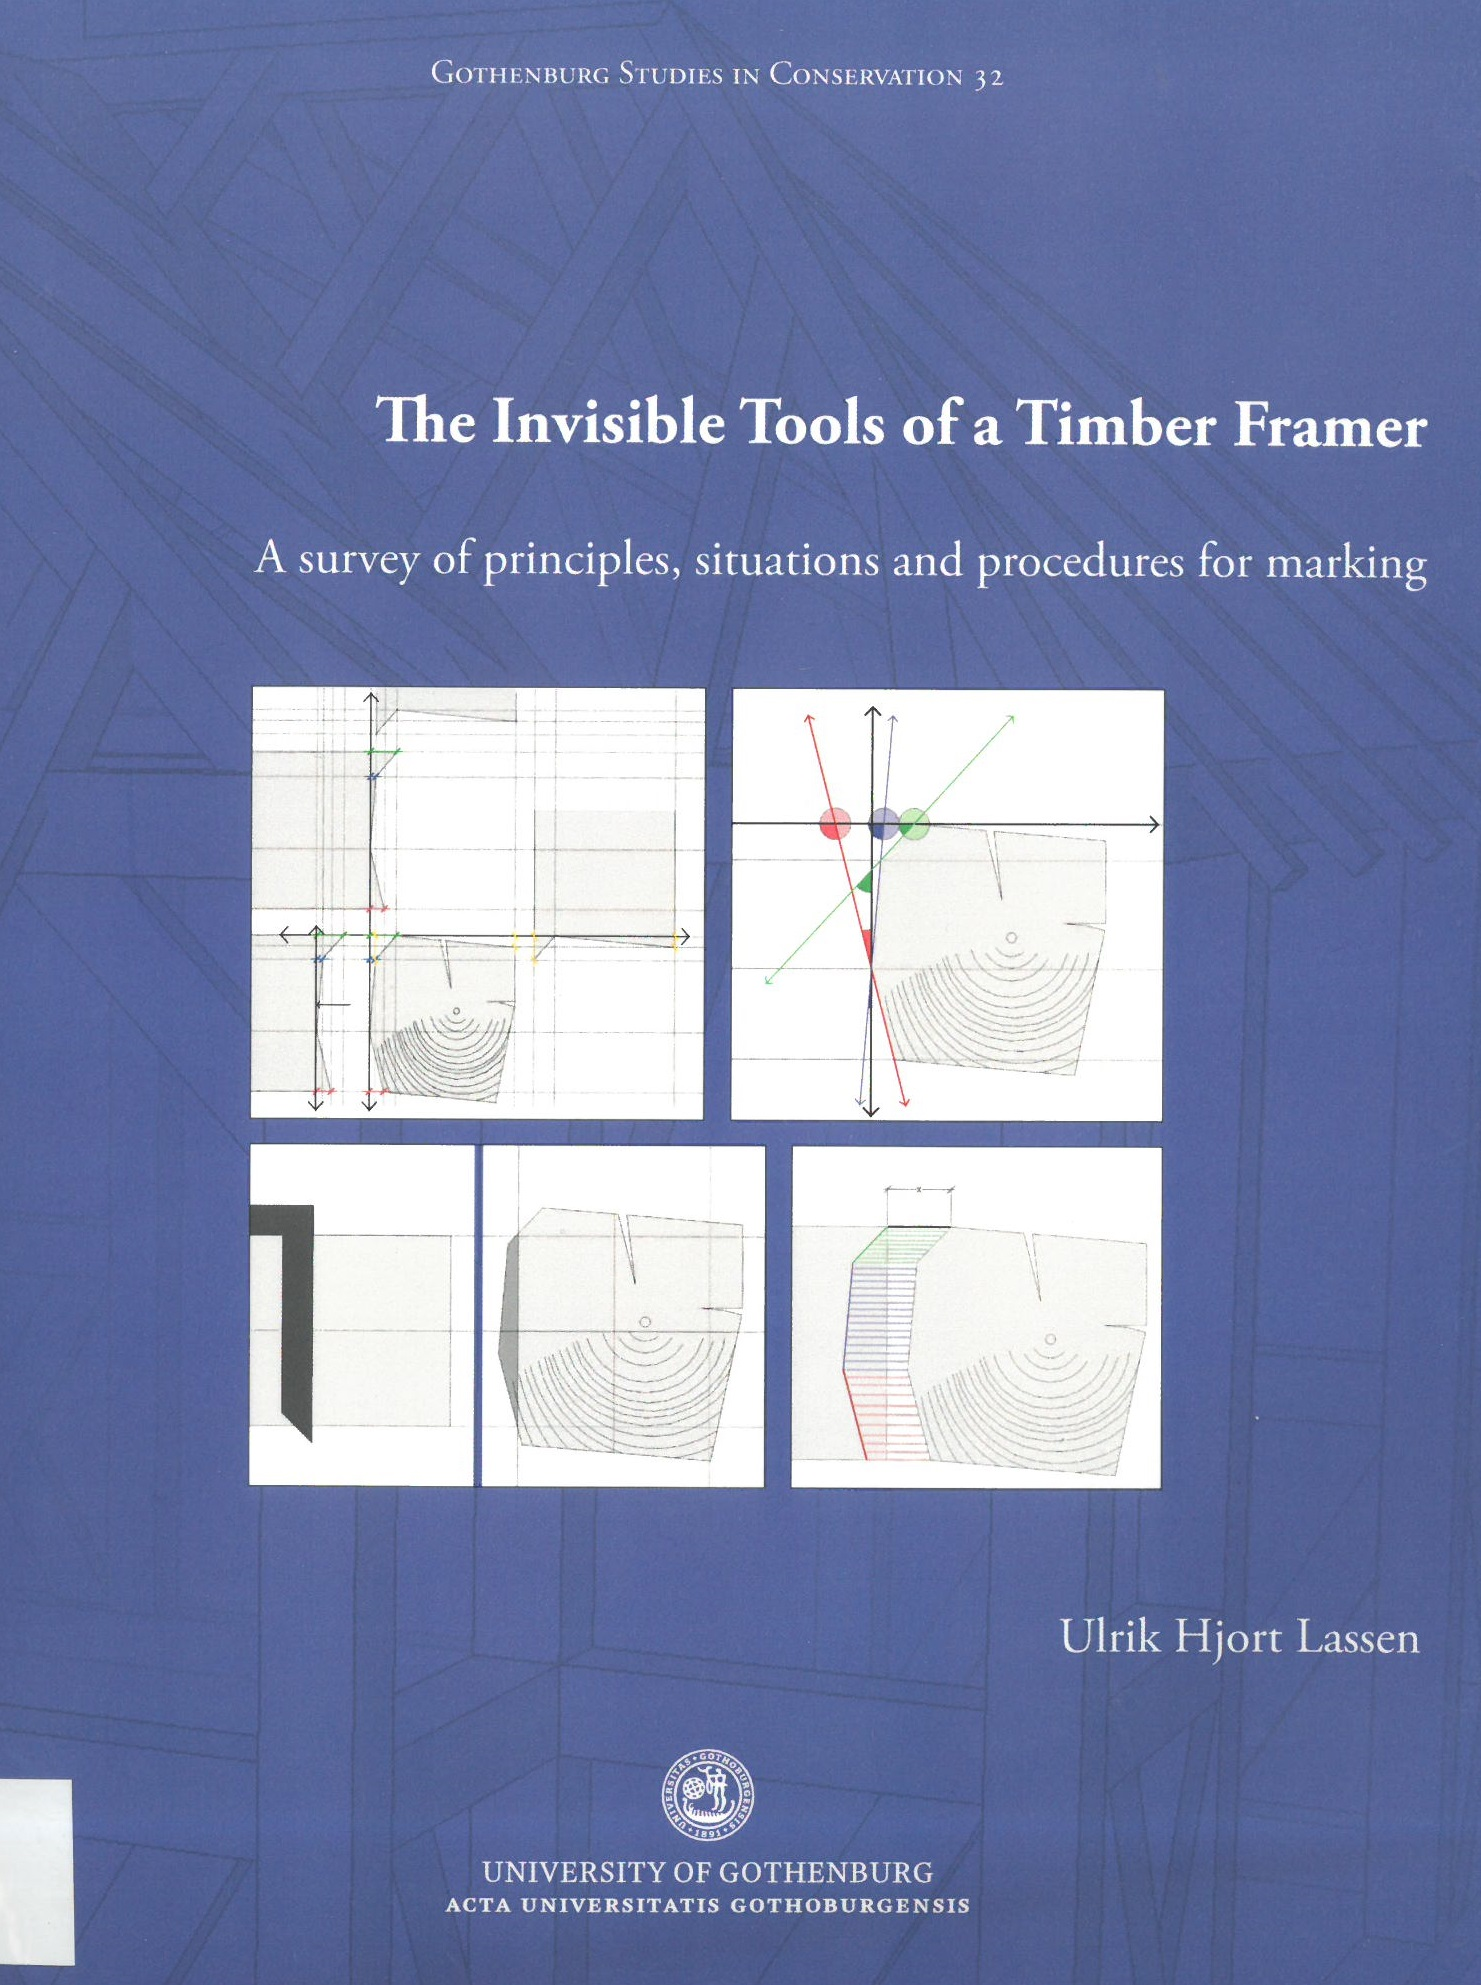 Book Cover of The Invisible Tools of a Timber Framer: a survey of principles, situations and procedures for marking - Click to open book in a new window